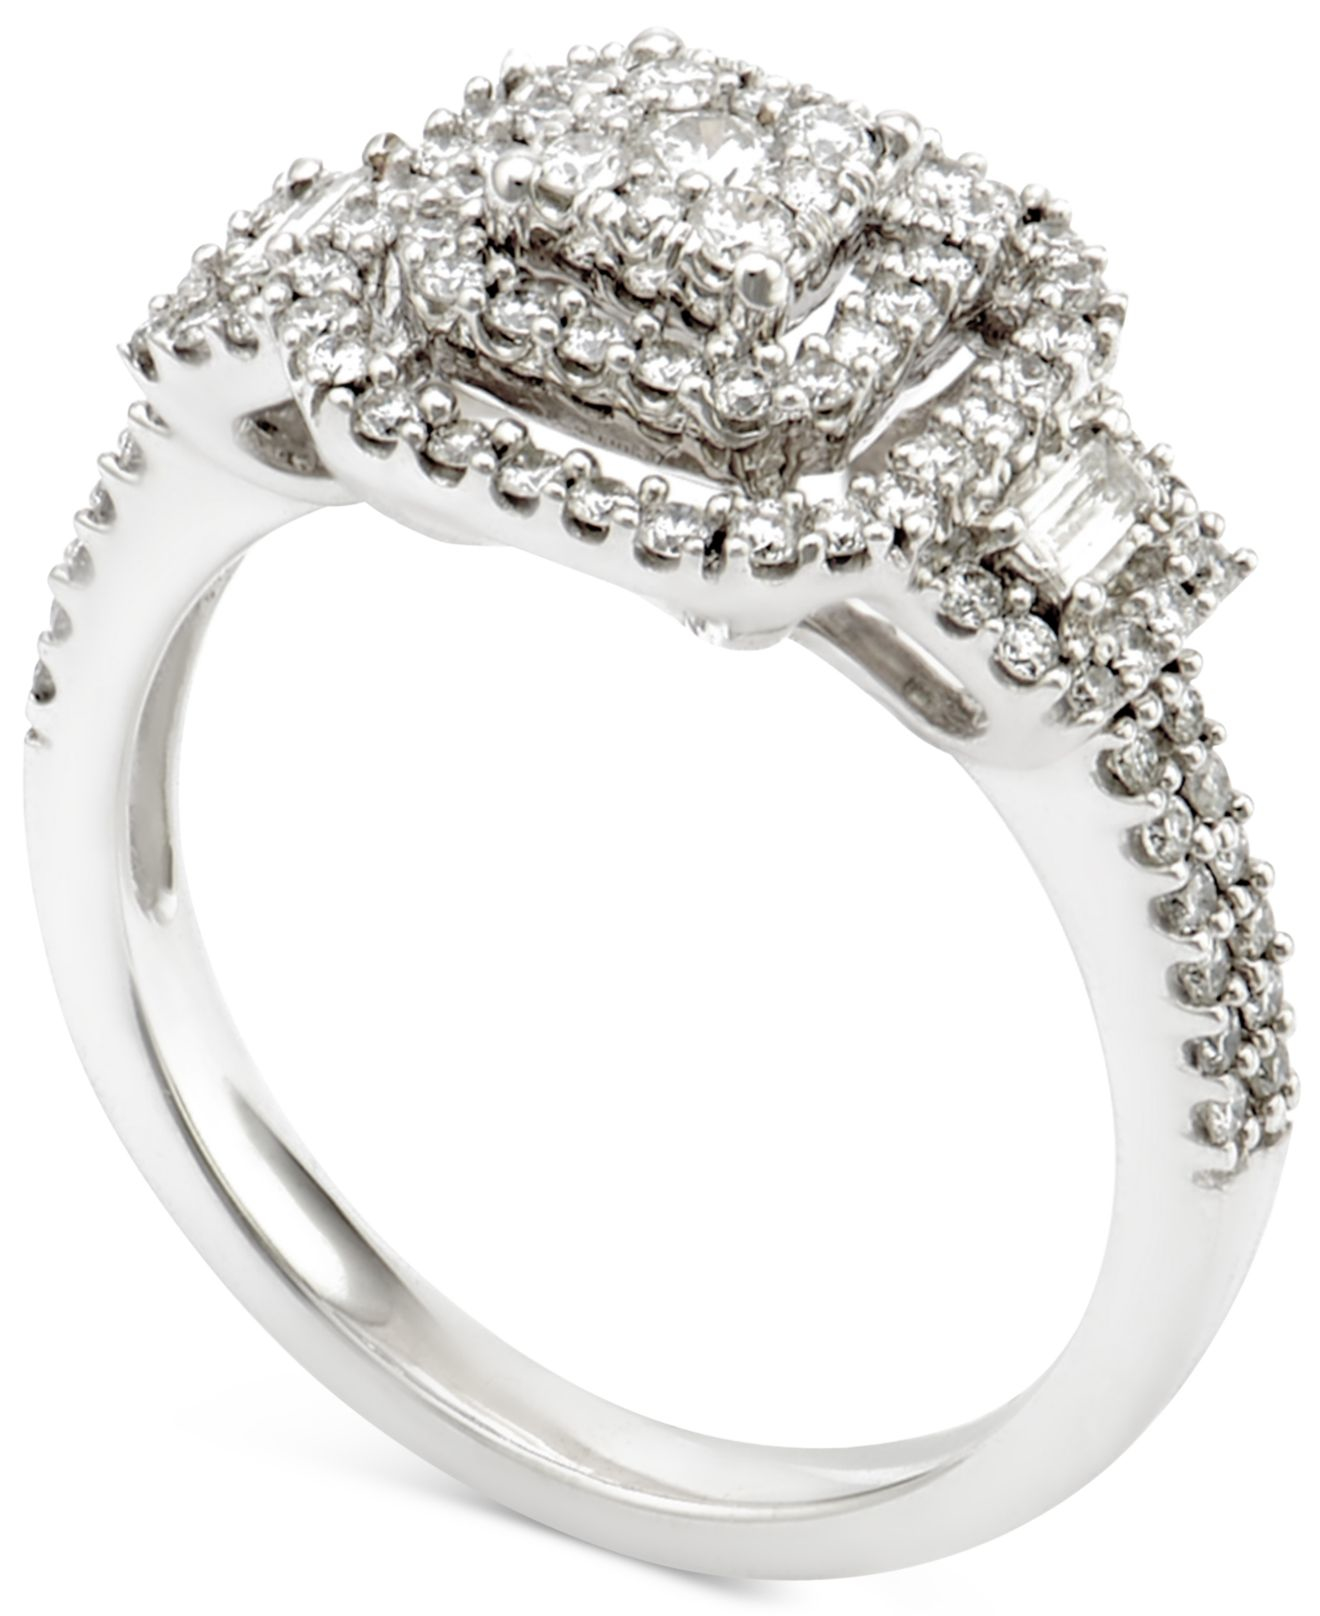 Macy s Diamond Engagement Ring 3 4 Ct T w In 14k White Gold in White